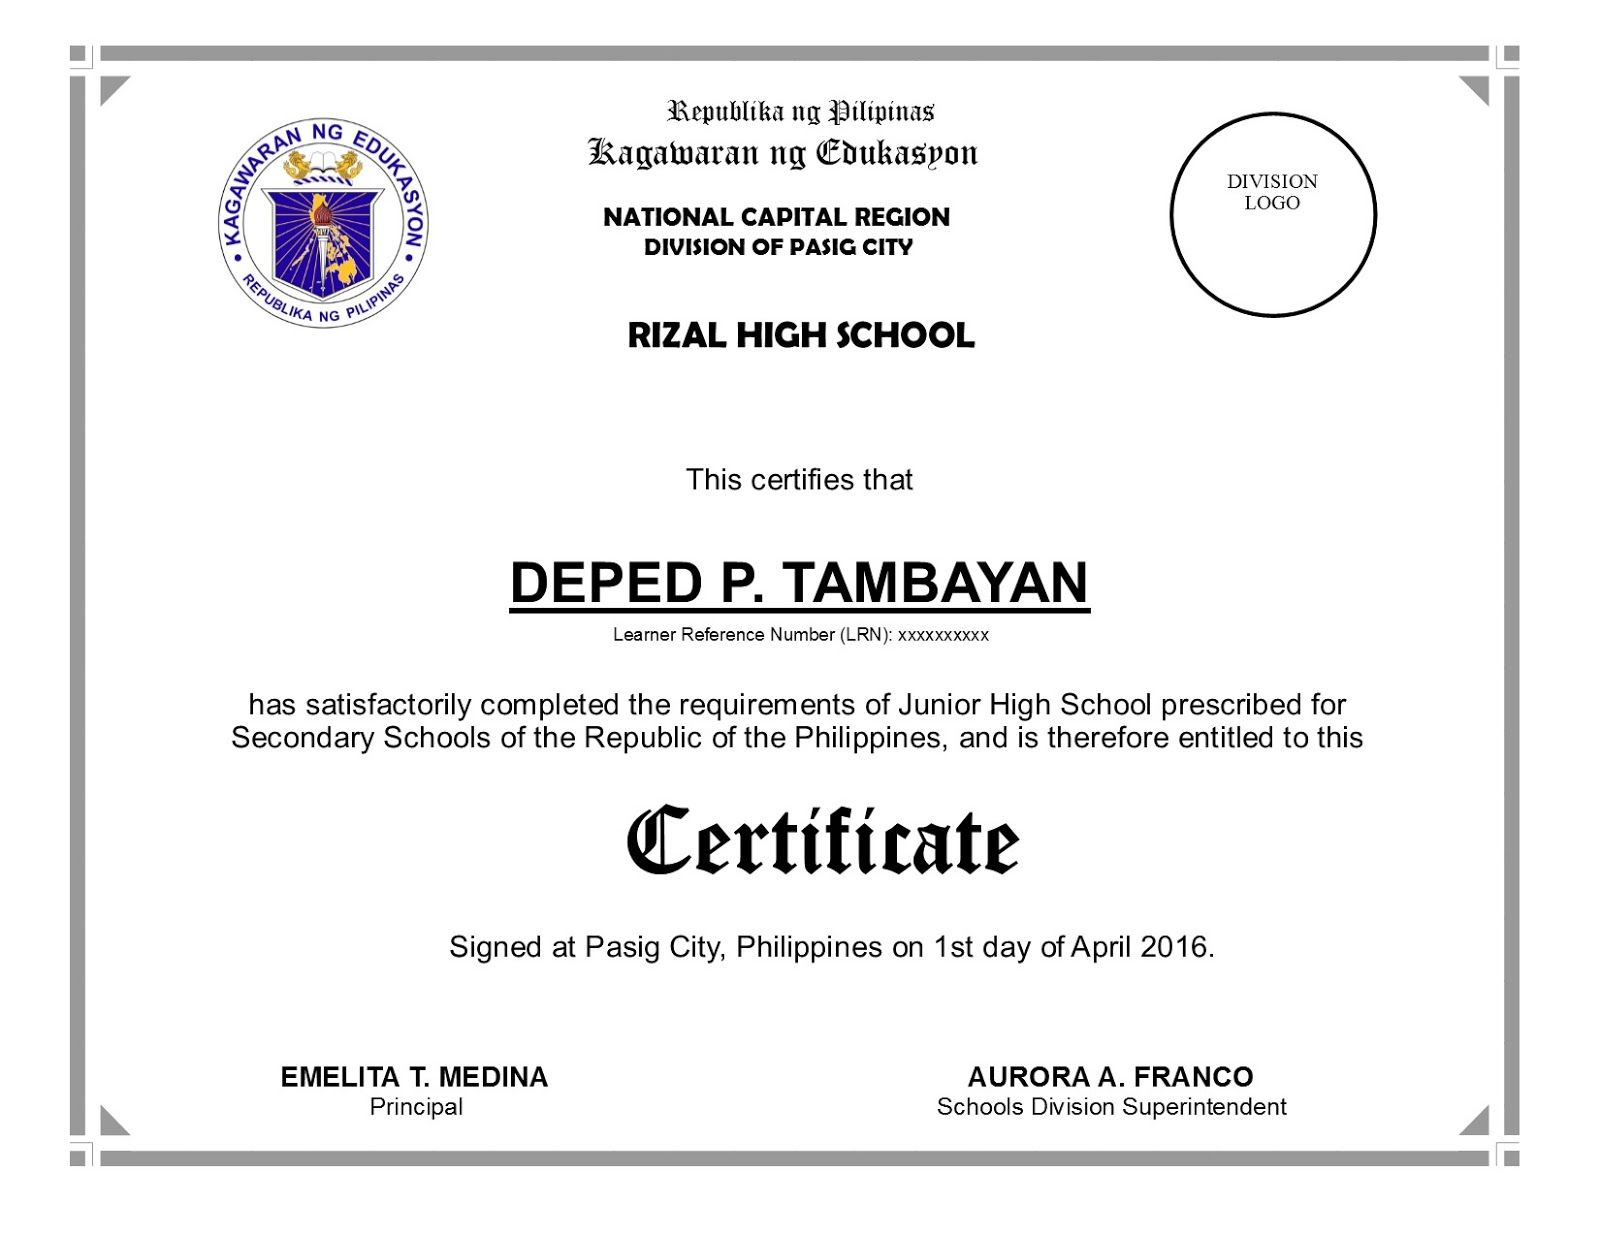 Deped diploma sample wordings yahoo image search results deped diploma sample wordings yahoo image search results yadclub Gallery